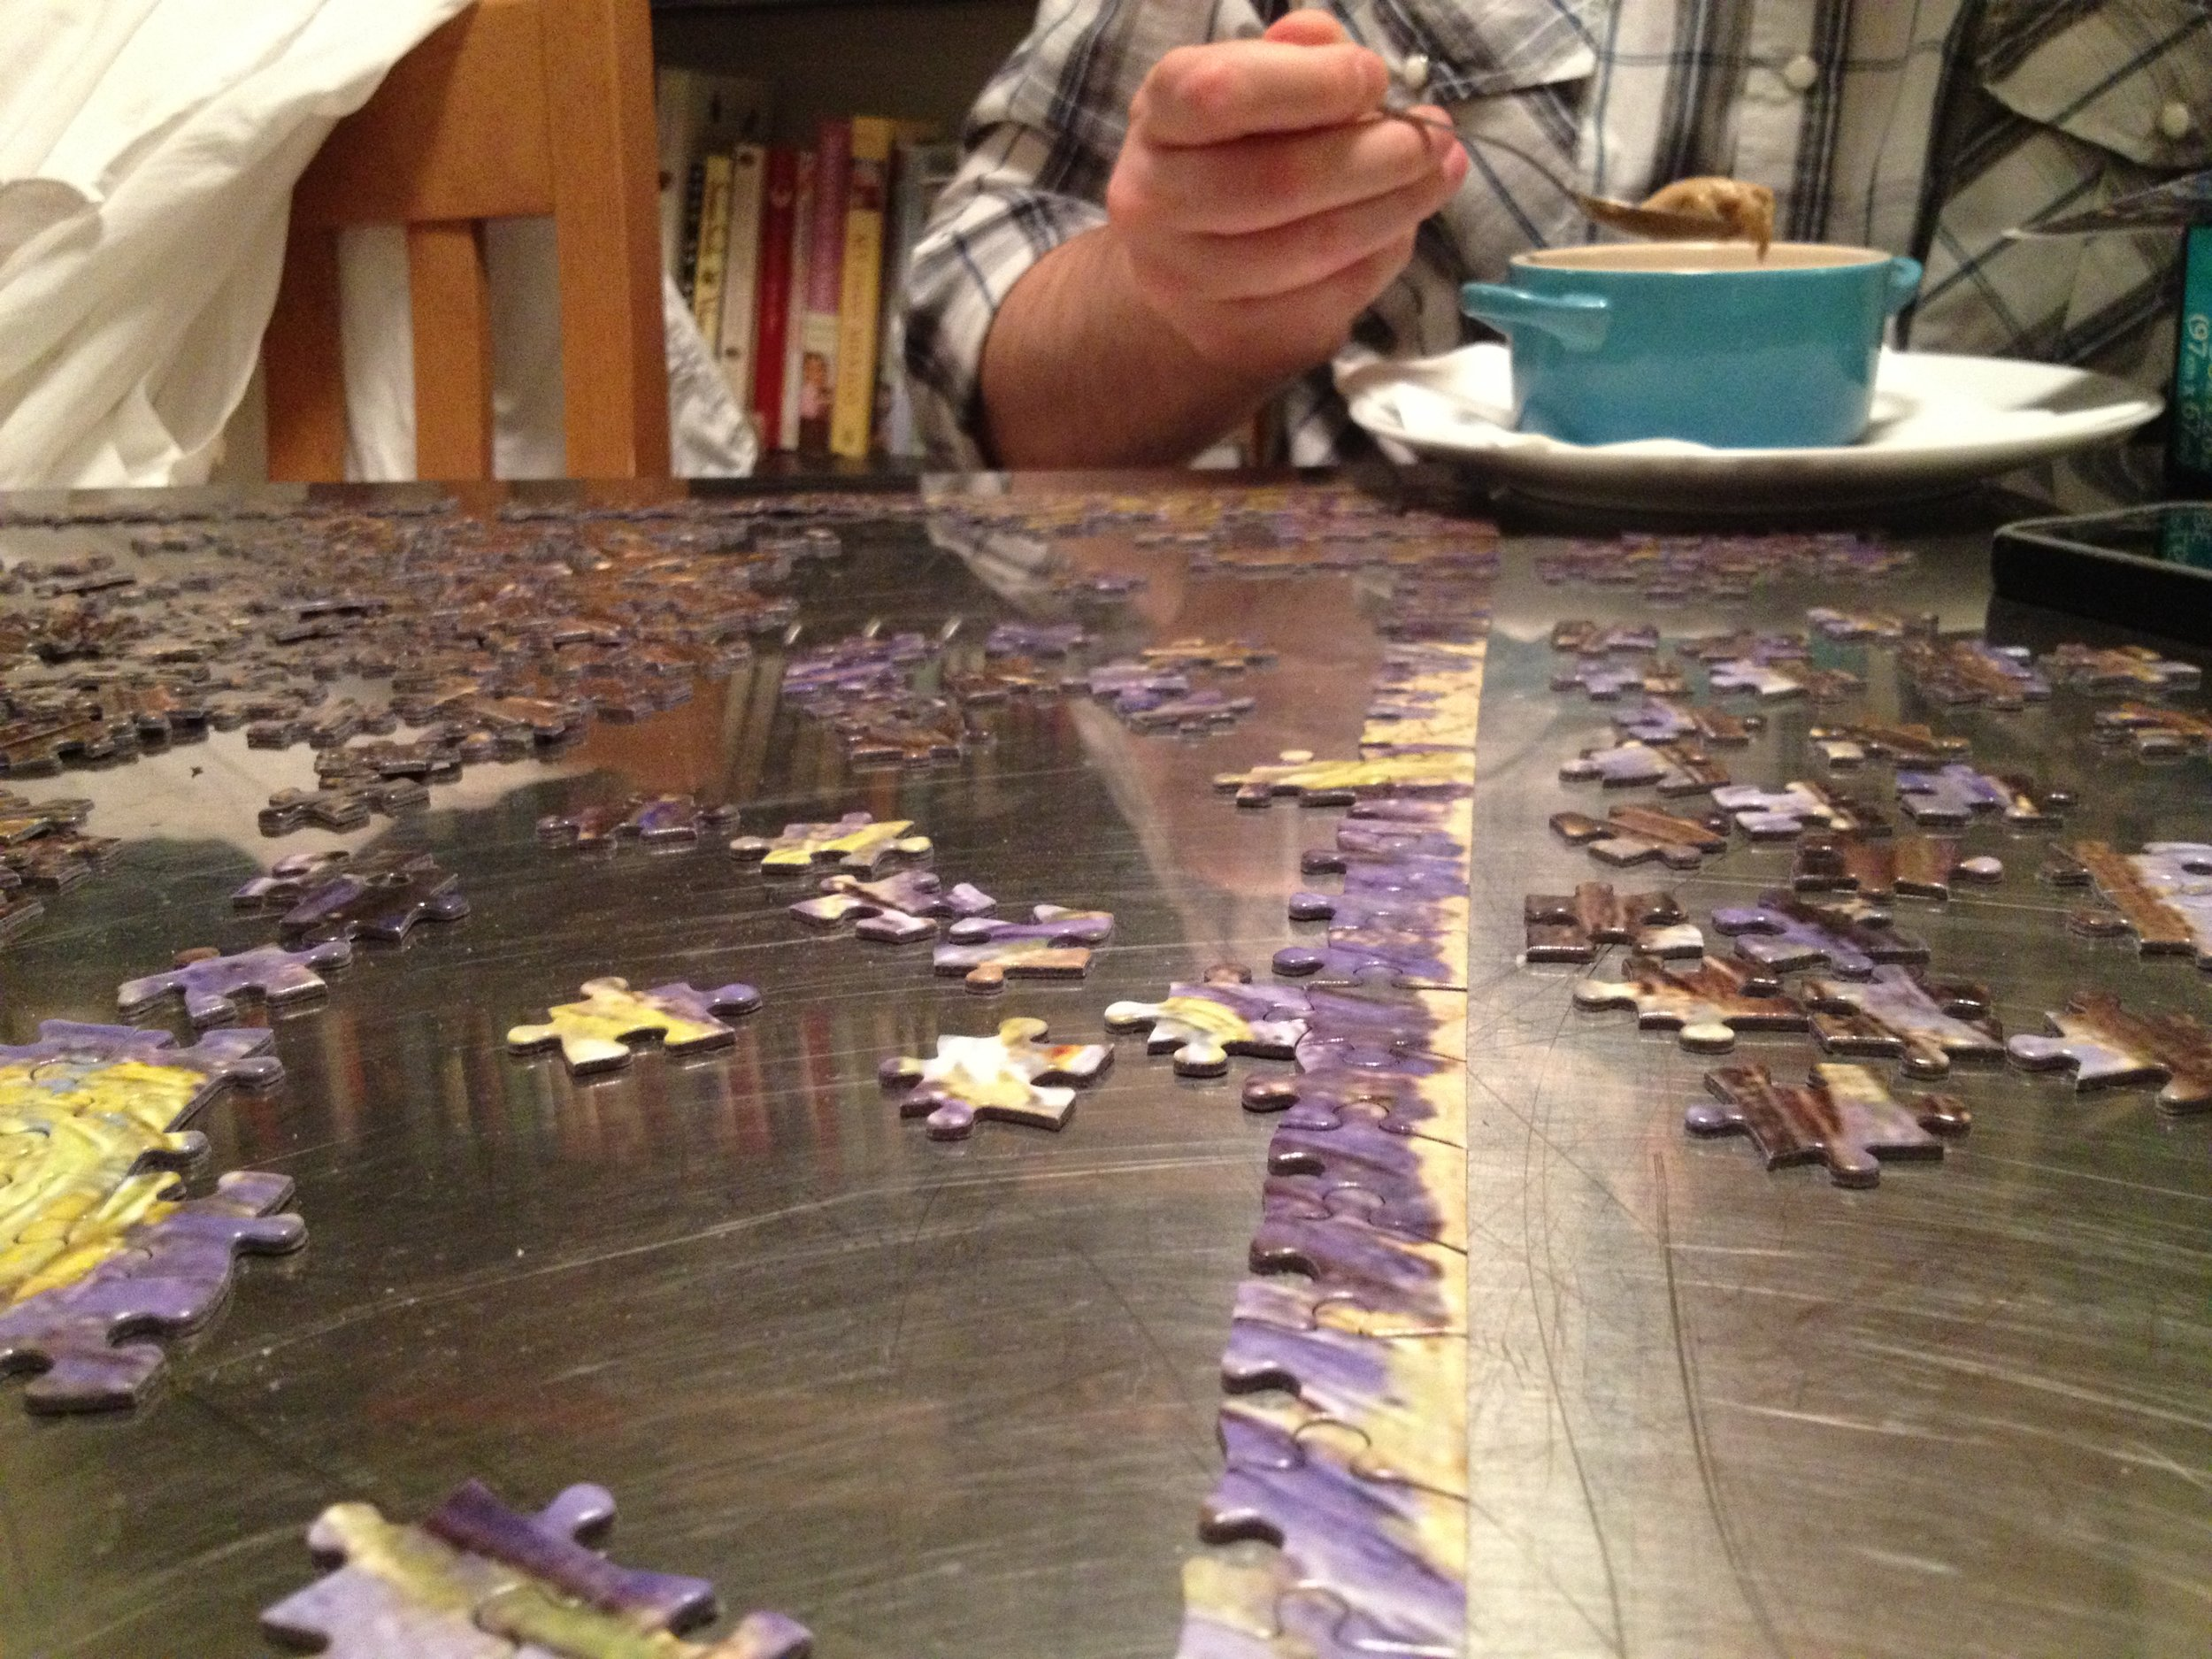 Brian eating his Coffee Creme Brulee while attempting this crazt puzzle.